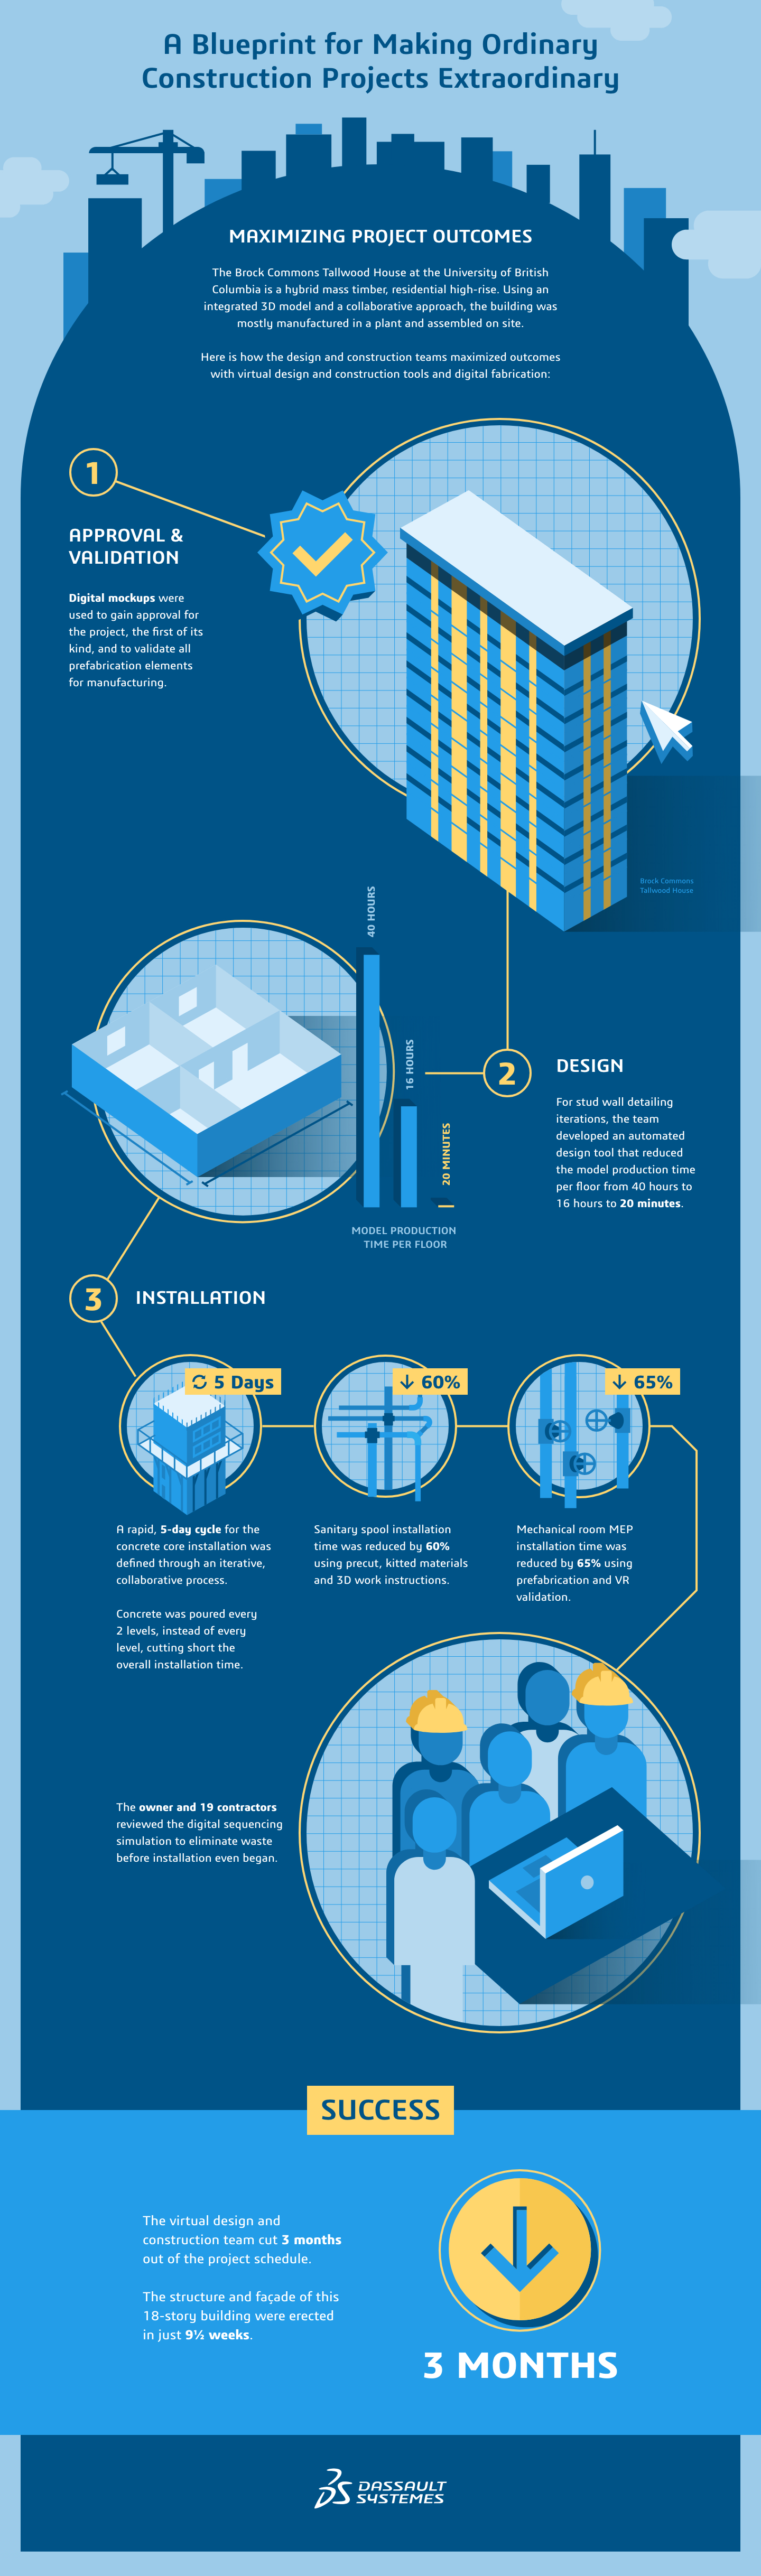 Virtual design and construction | Architecture, Engineering ...